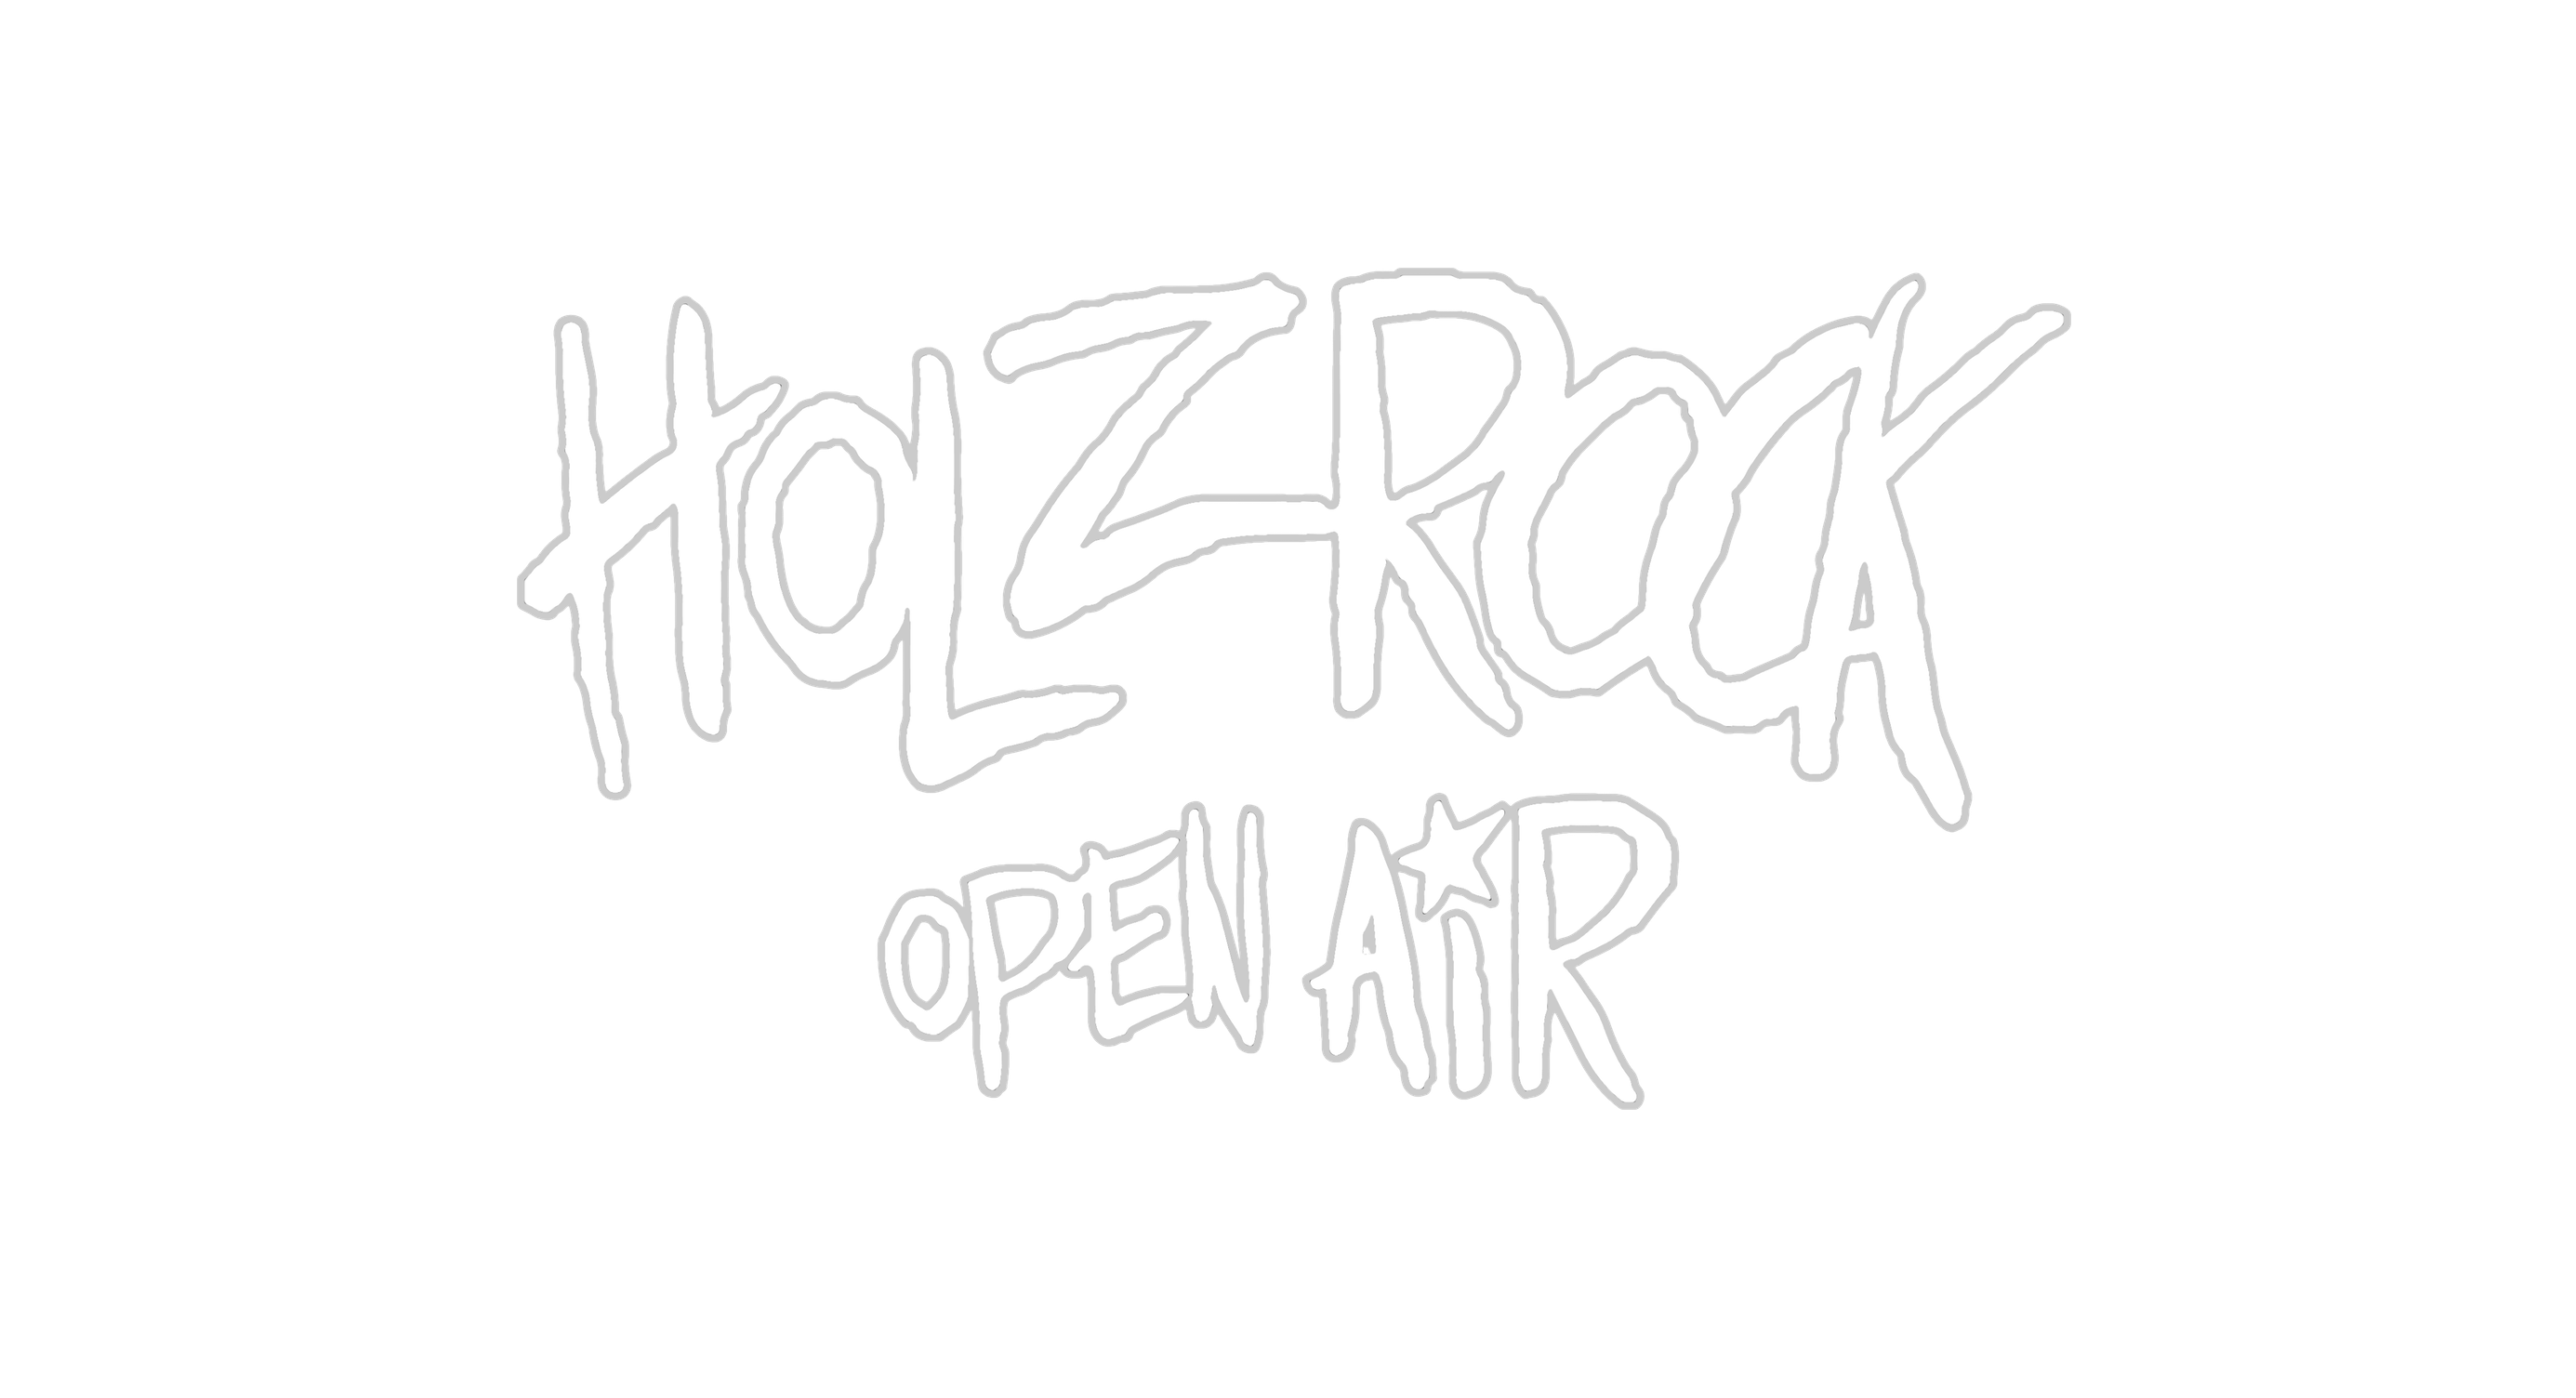 Holzrock Open Air